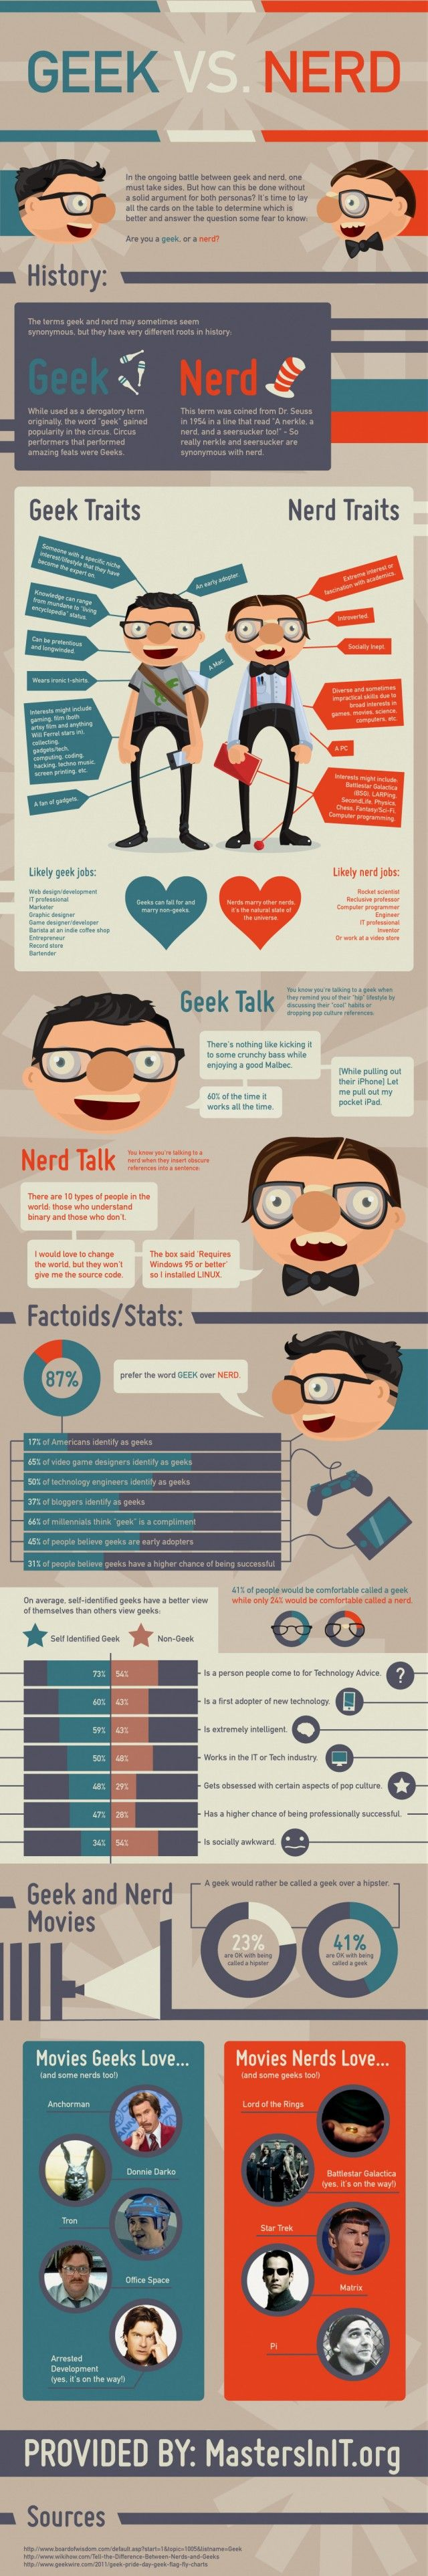 Geek vs. Nerd #flowchart #infographic